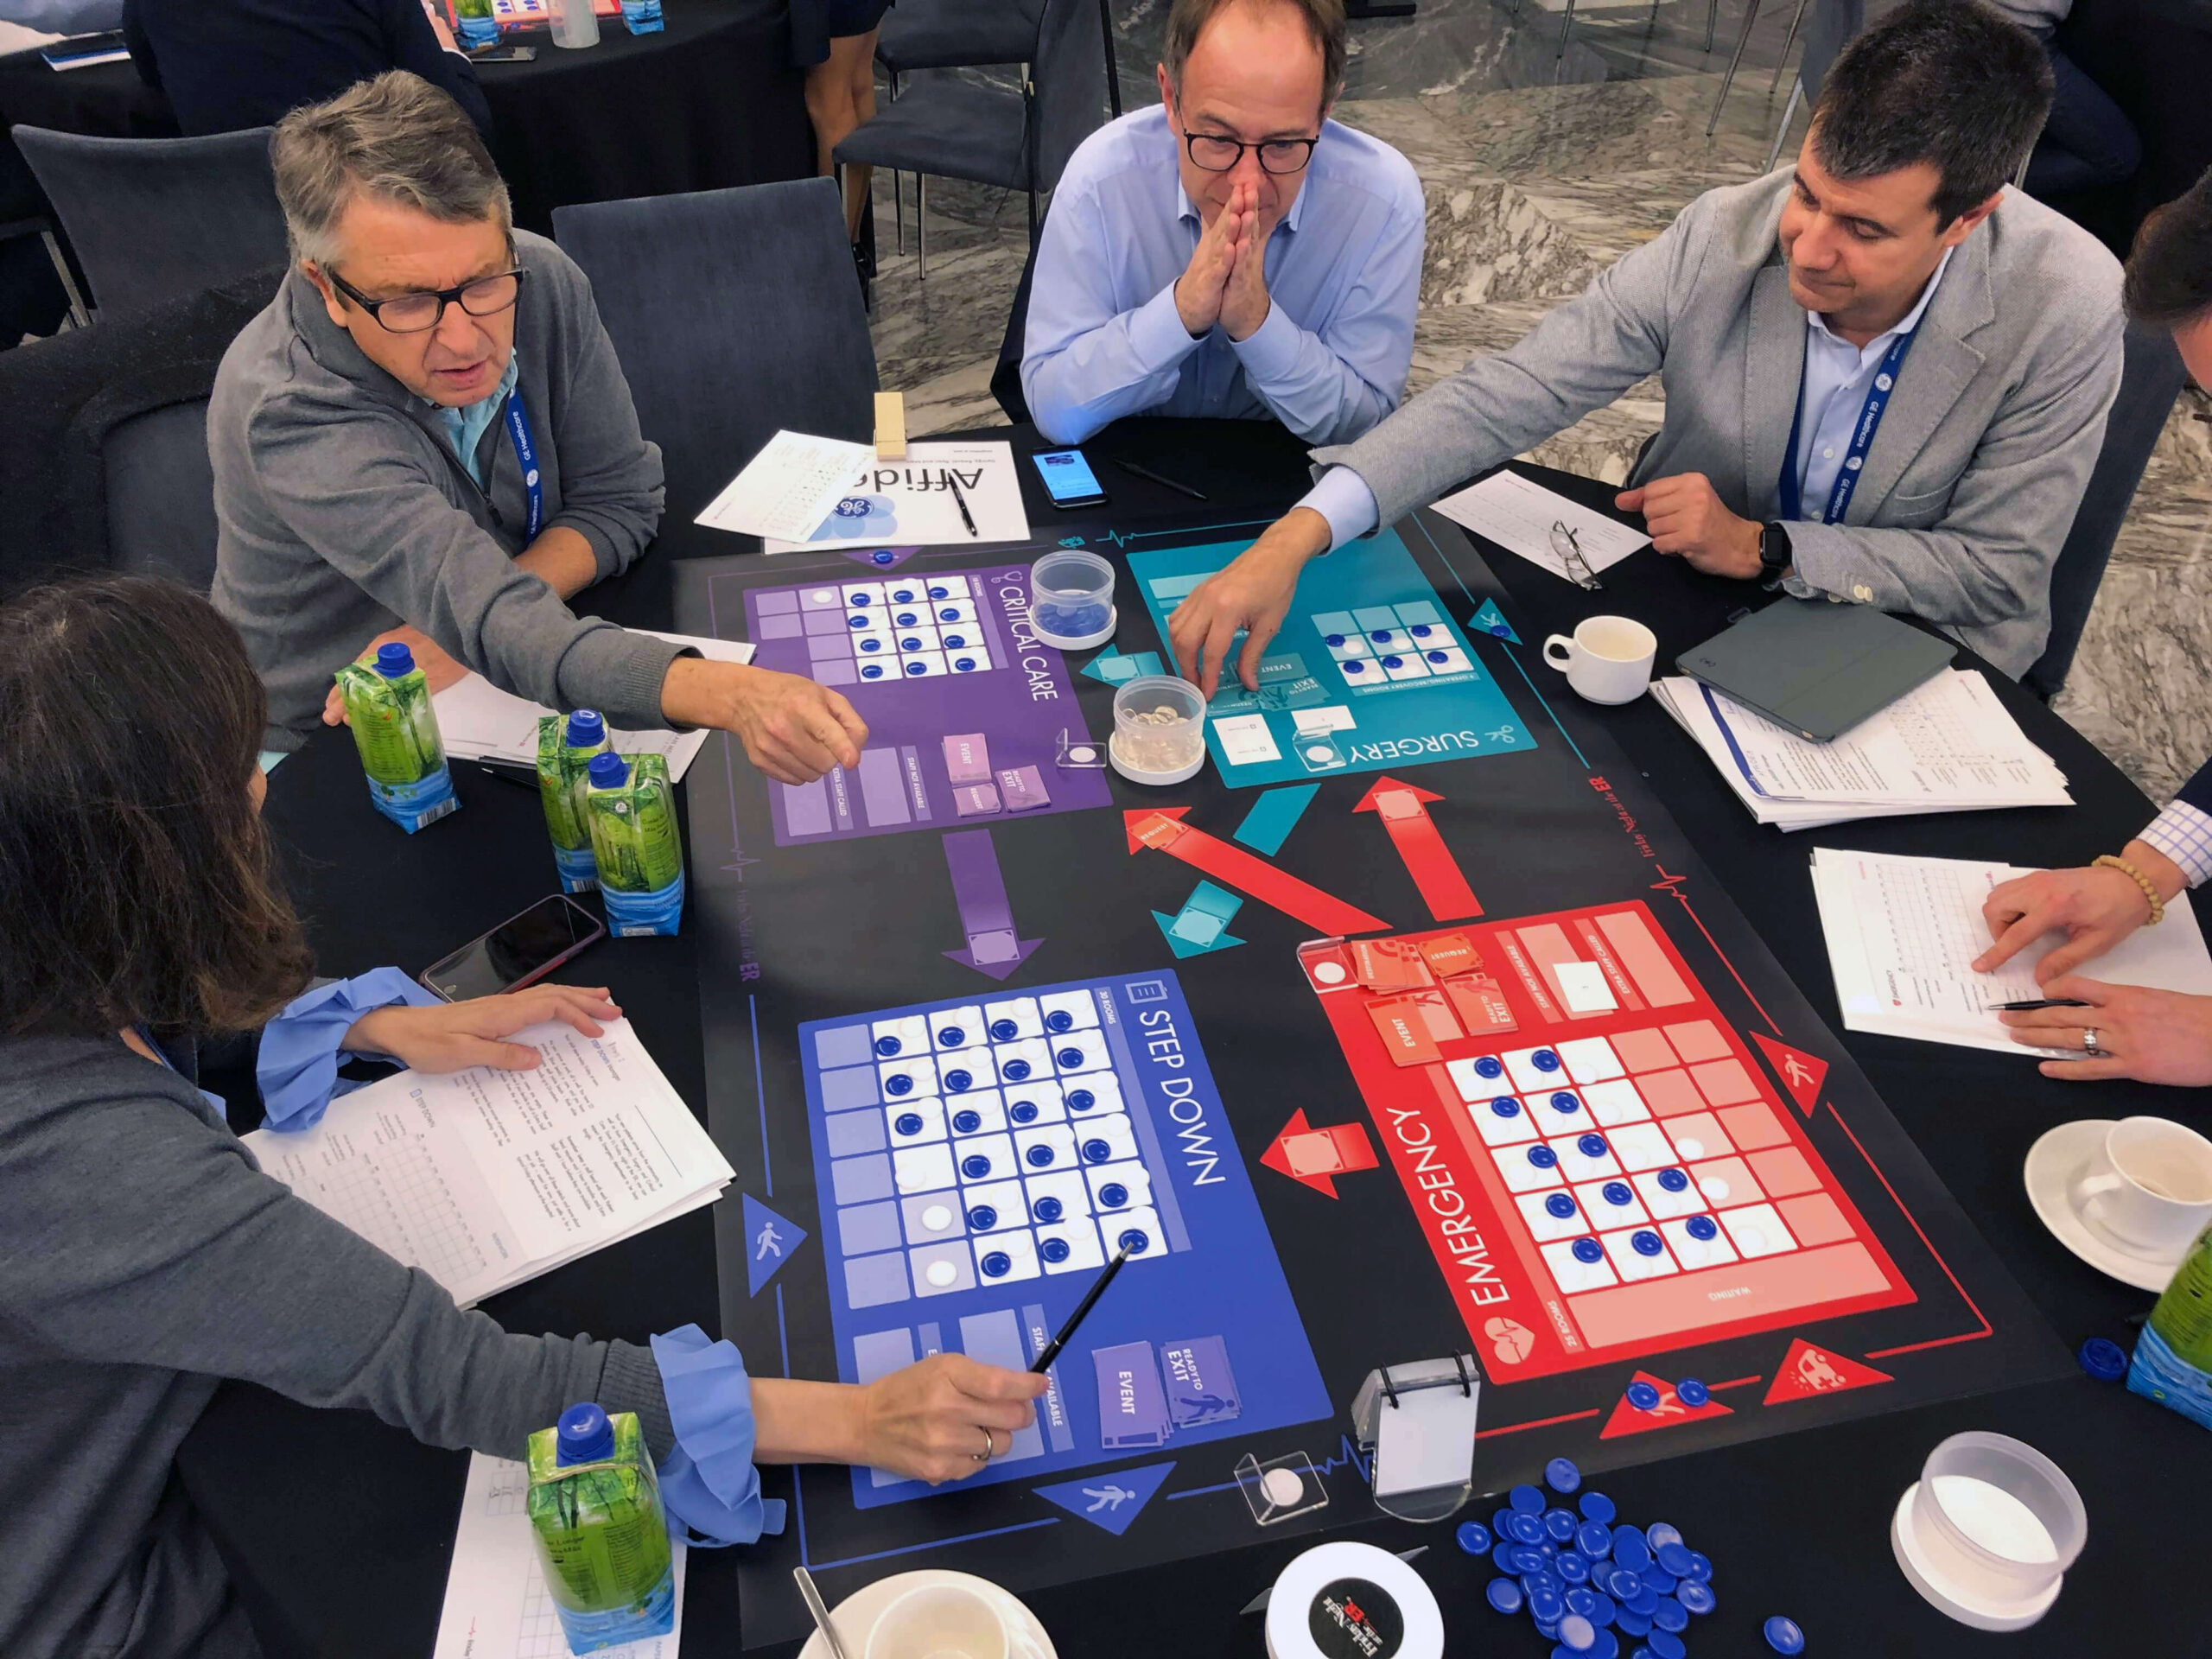 Four managers in business attire play a tabletop simulation game as a team building activity and to break down silo thinking